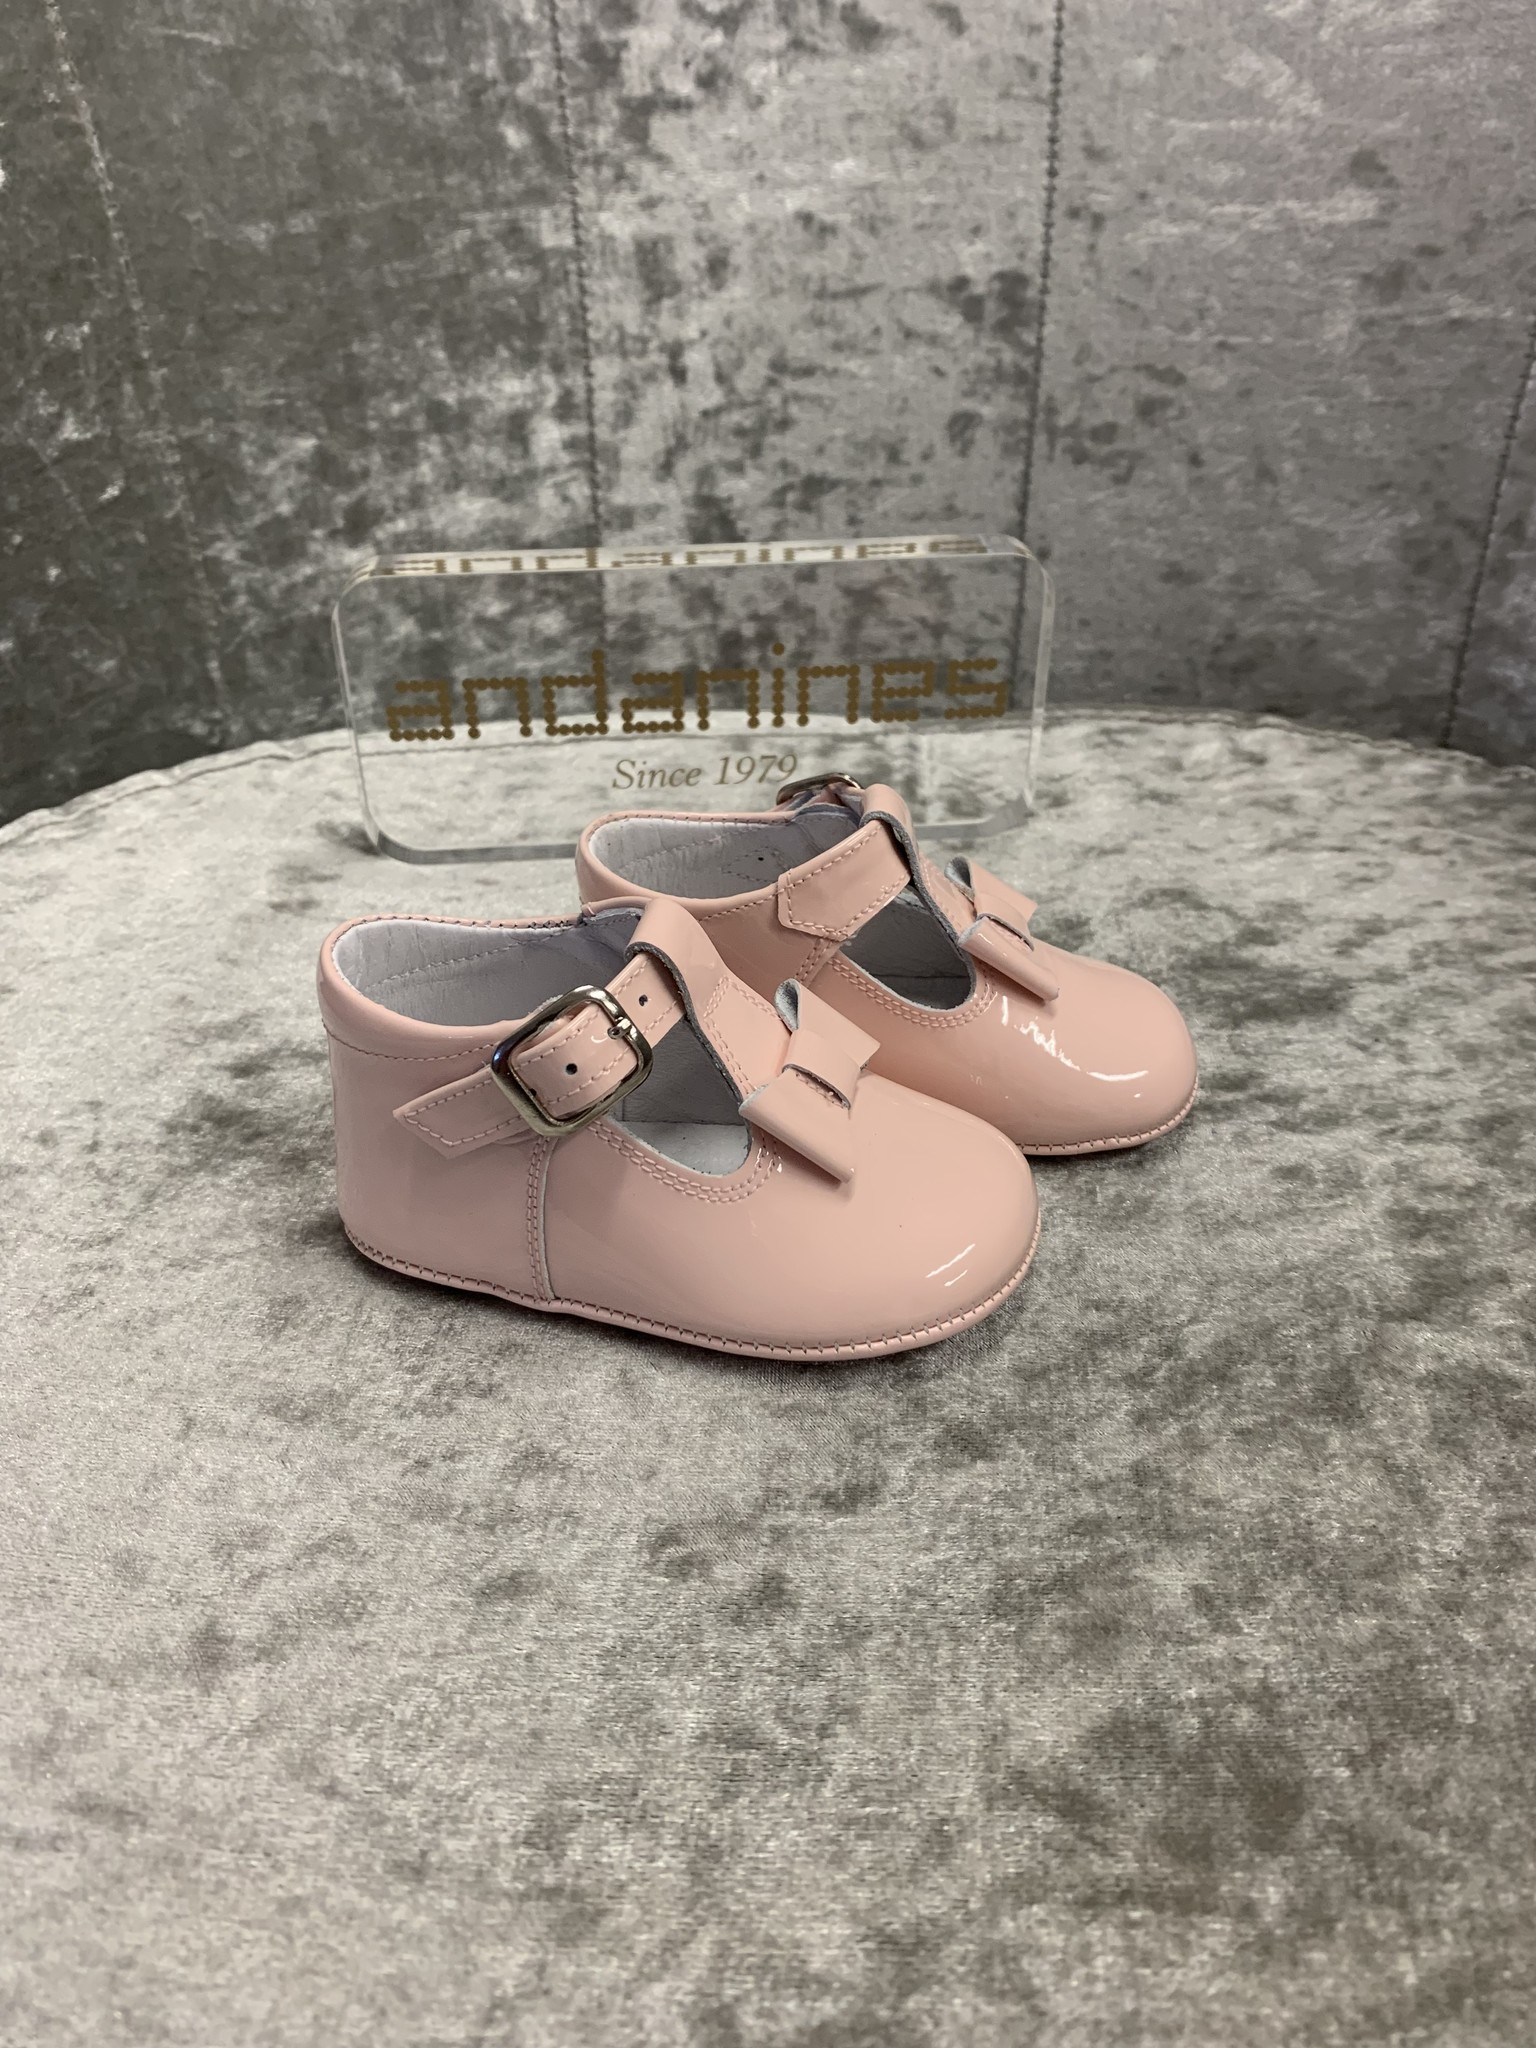 Andanines Andanines Pink Patent Bow Pram Shoes